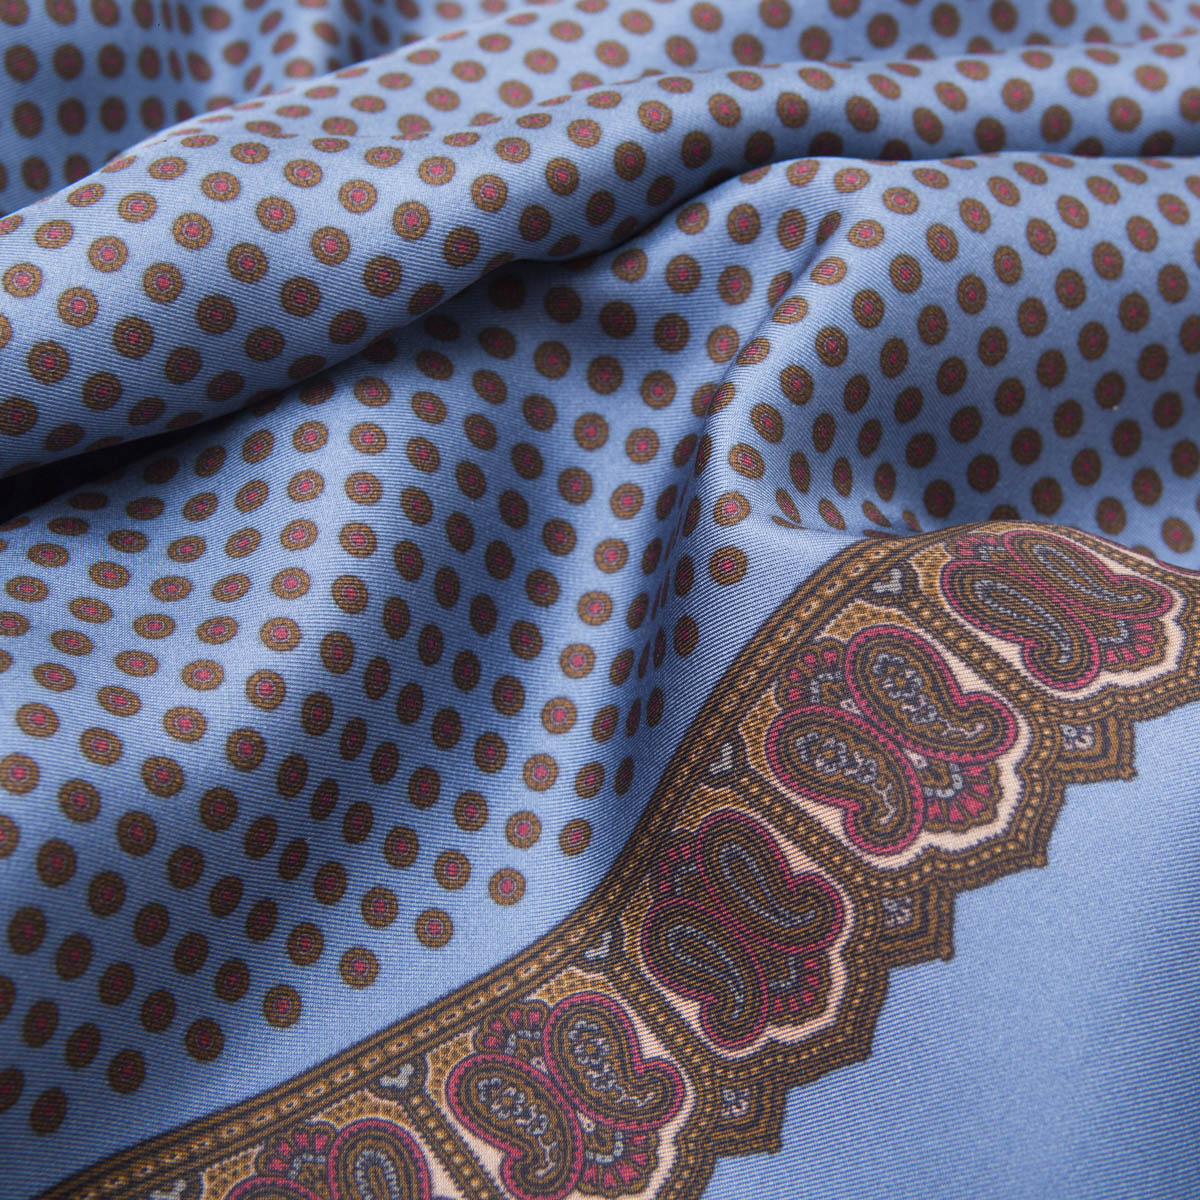 Celestial Silk Scarf with Medaillons pattern